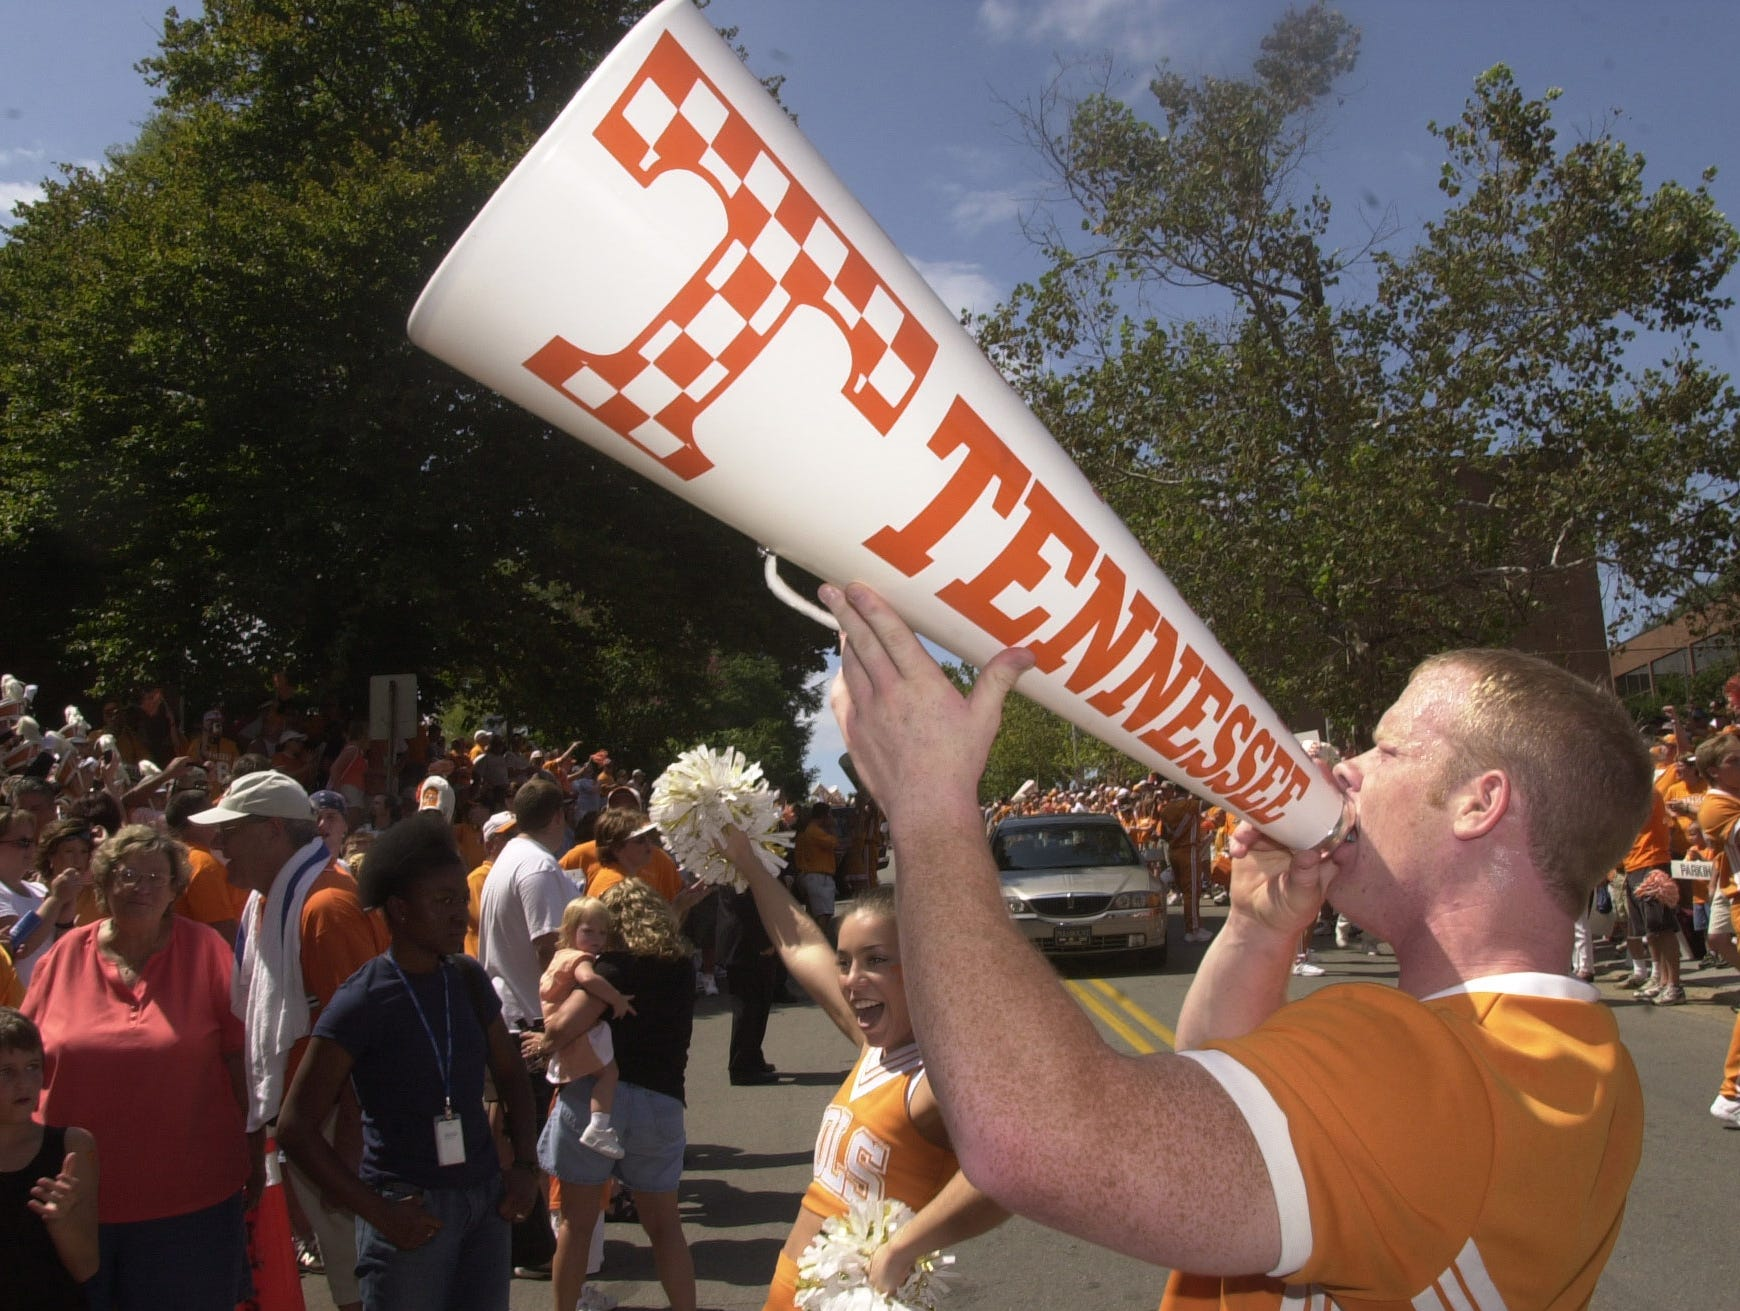 University of Tennessee cheerleaders Joel Rogers and Melea Shatley get the crowd pumped up before the players make the Vol Walk to the stadium for Tennessee's home-opening game.